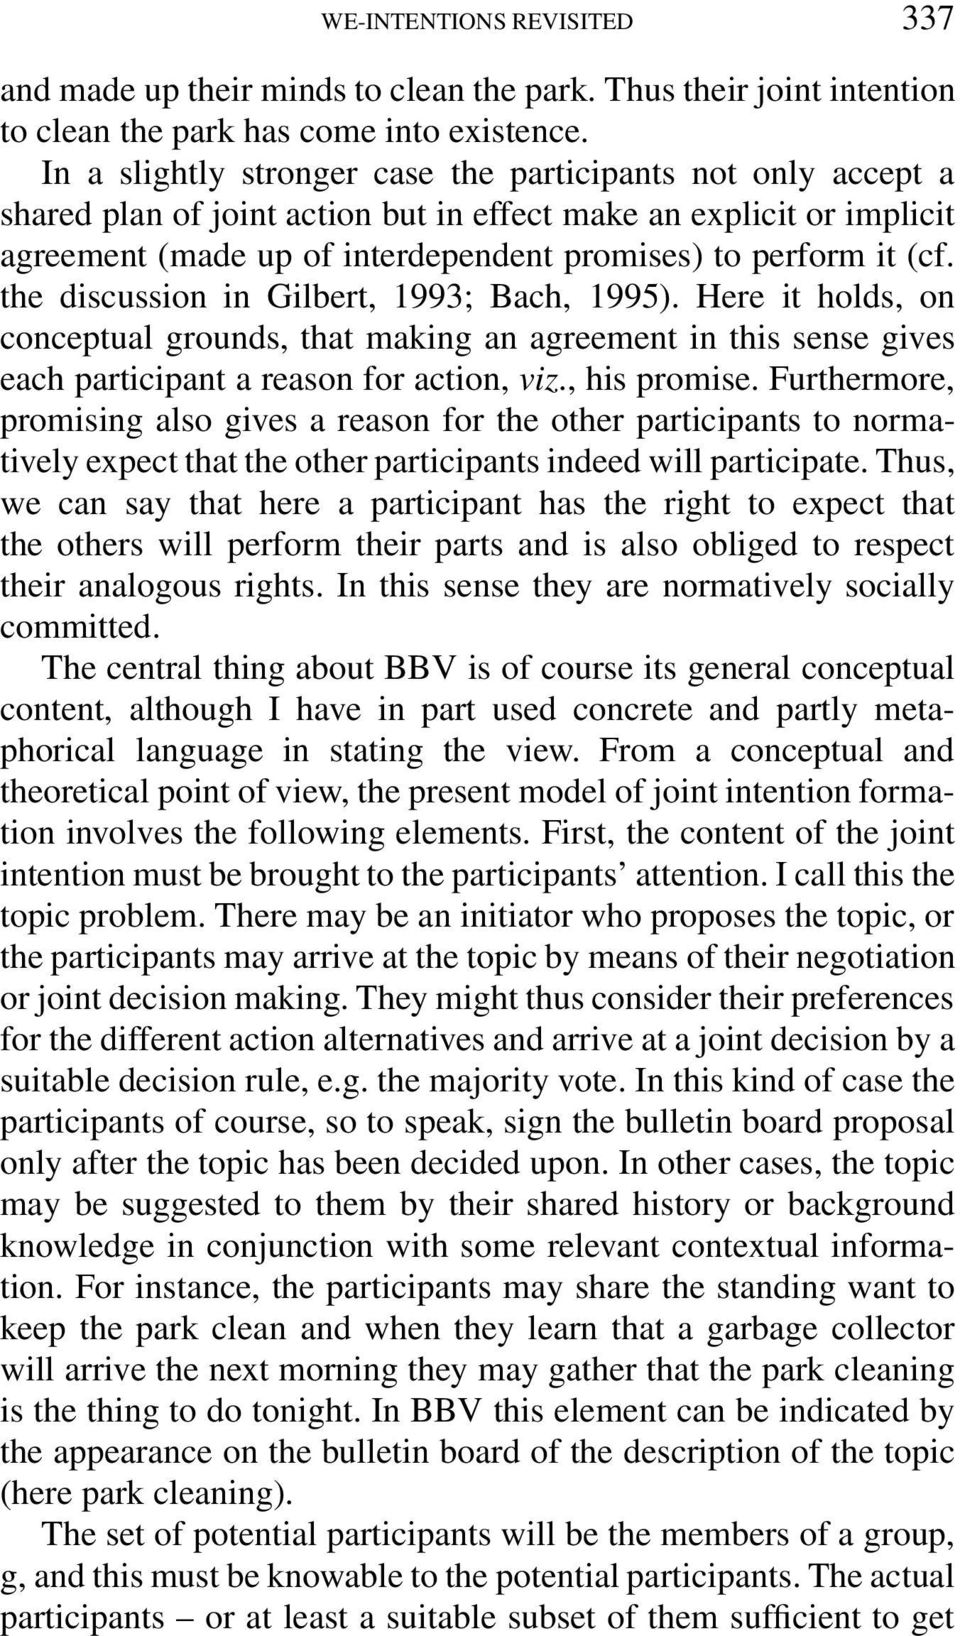 the discussion in Gilbert, 1993; Bach, 1995). Here it holds, on conceptual grounds, that making an agreement in this sense gives each participant a reason for action, viz., his promise.